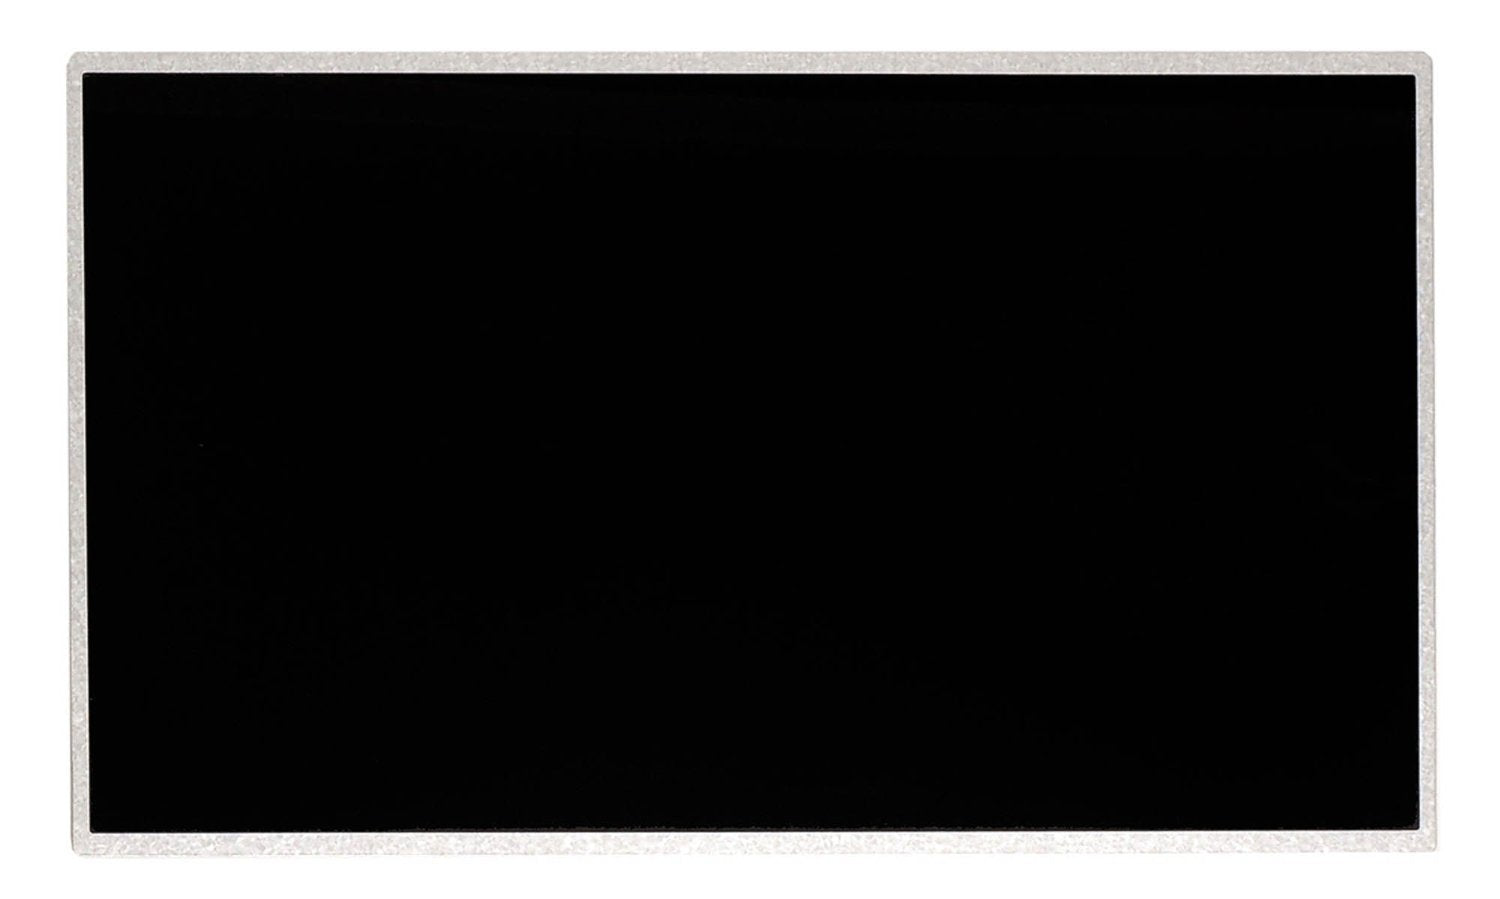 "AU OPTRONICS B156XTN02 V.2 LAPTOP LCD SCREEN 15.6"" WXGA HD LED DIODE (SUBSTITUTE REPLACEMENT LCD SCREEN ONLY. NOT A LAPT"